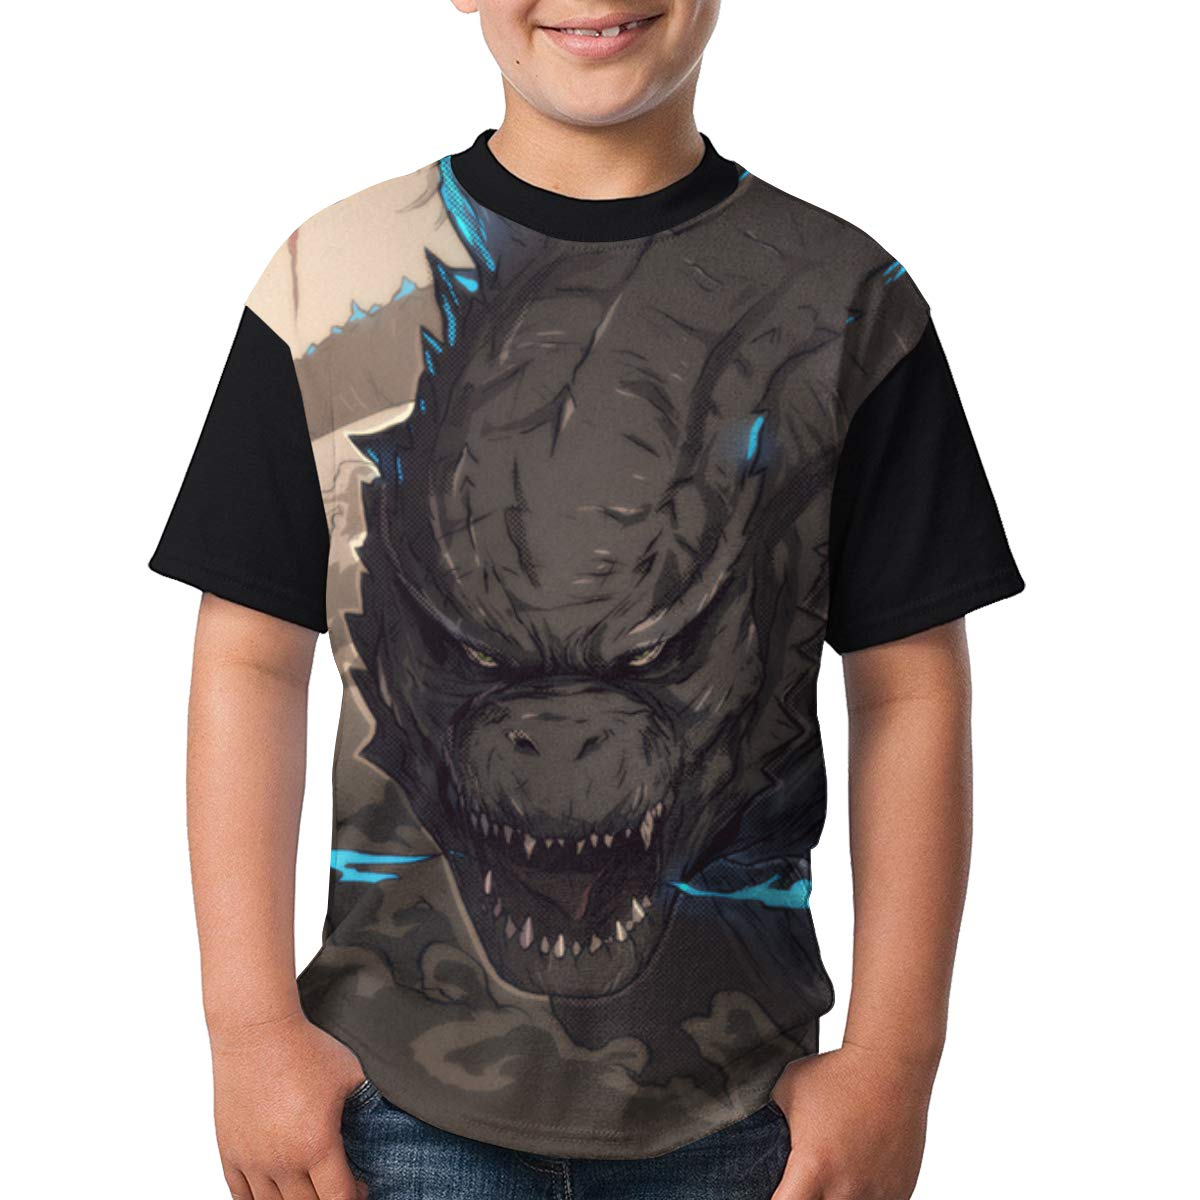 Selfhood-Vogue Youth God-Zilla Tee T-Shirt for Teenager Boys Girls Black